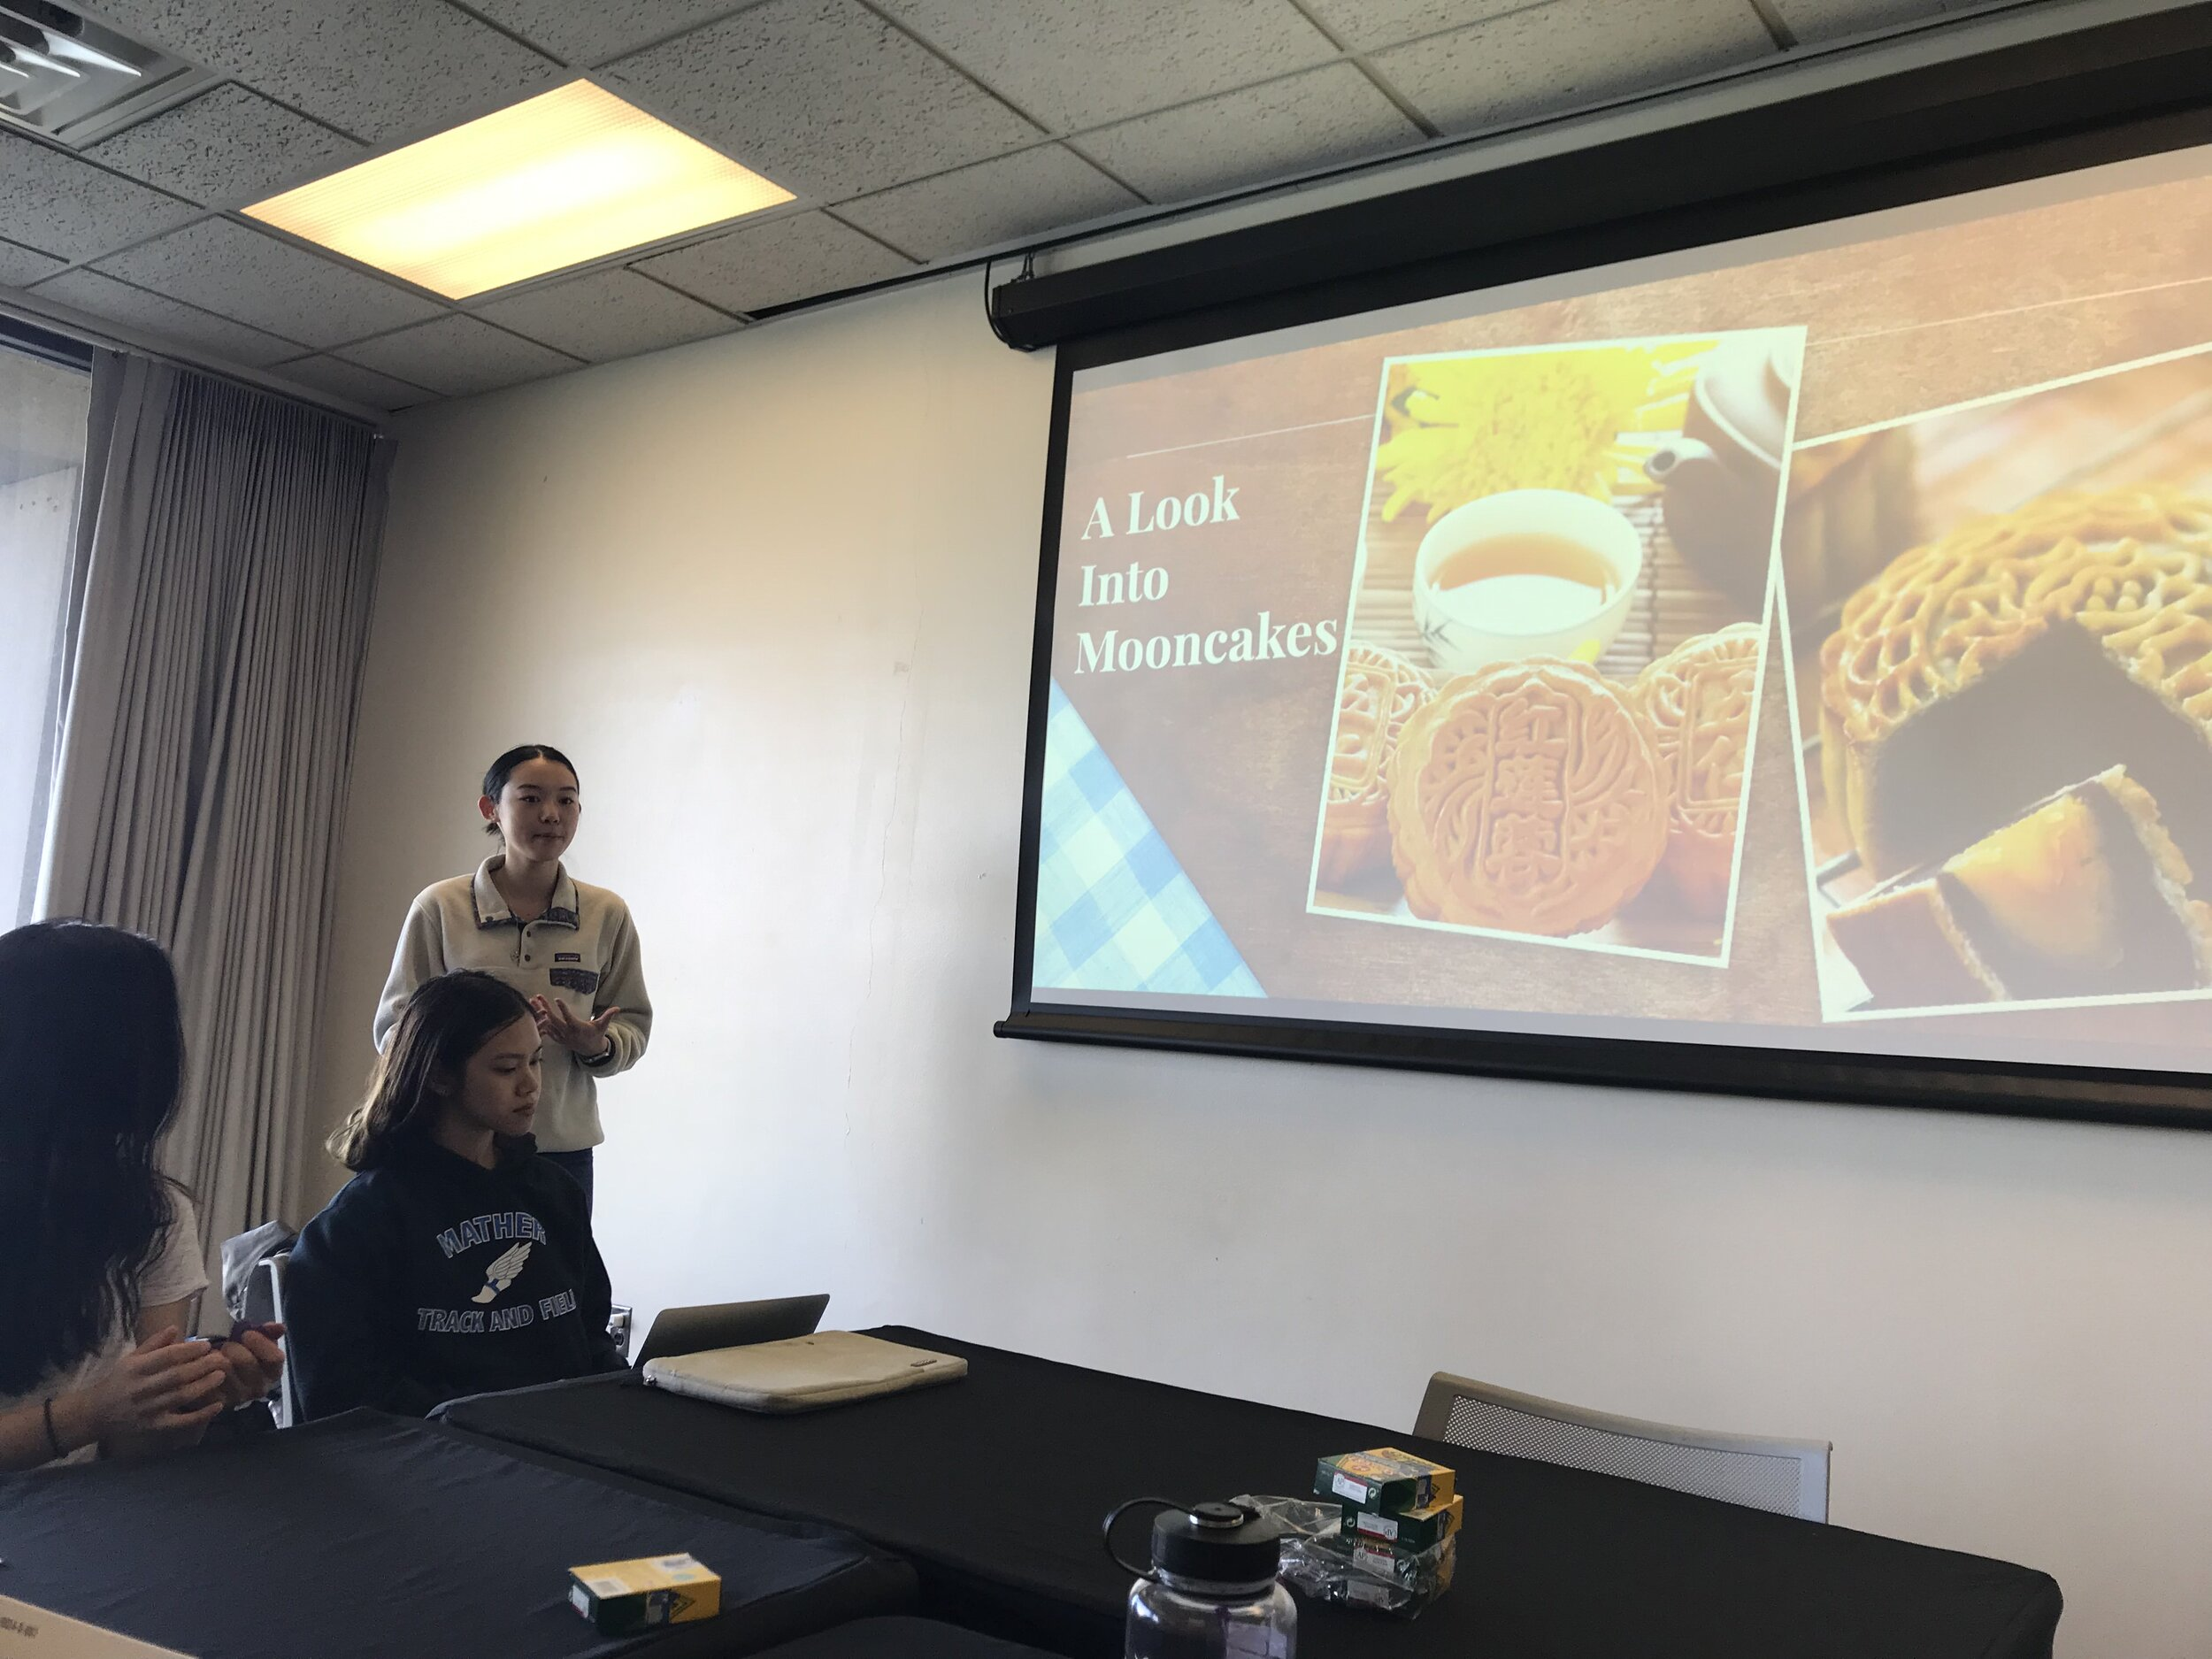 Danyi and Emily did a great job leading the presentation and activities! A copy of the presentation can be found here: [ https://docs.google.com/presentation/d/13GKOp7dqPT7JnjWIriHDhdp30j9ZSah_ul34ZjbitHg/ ]